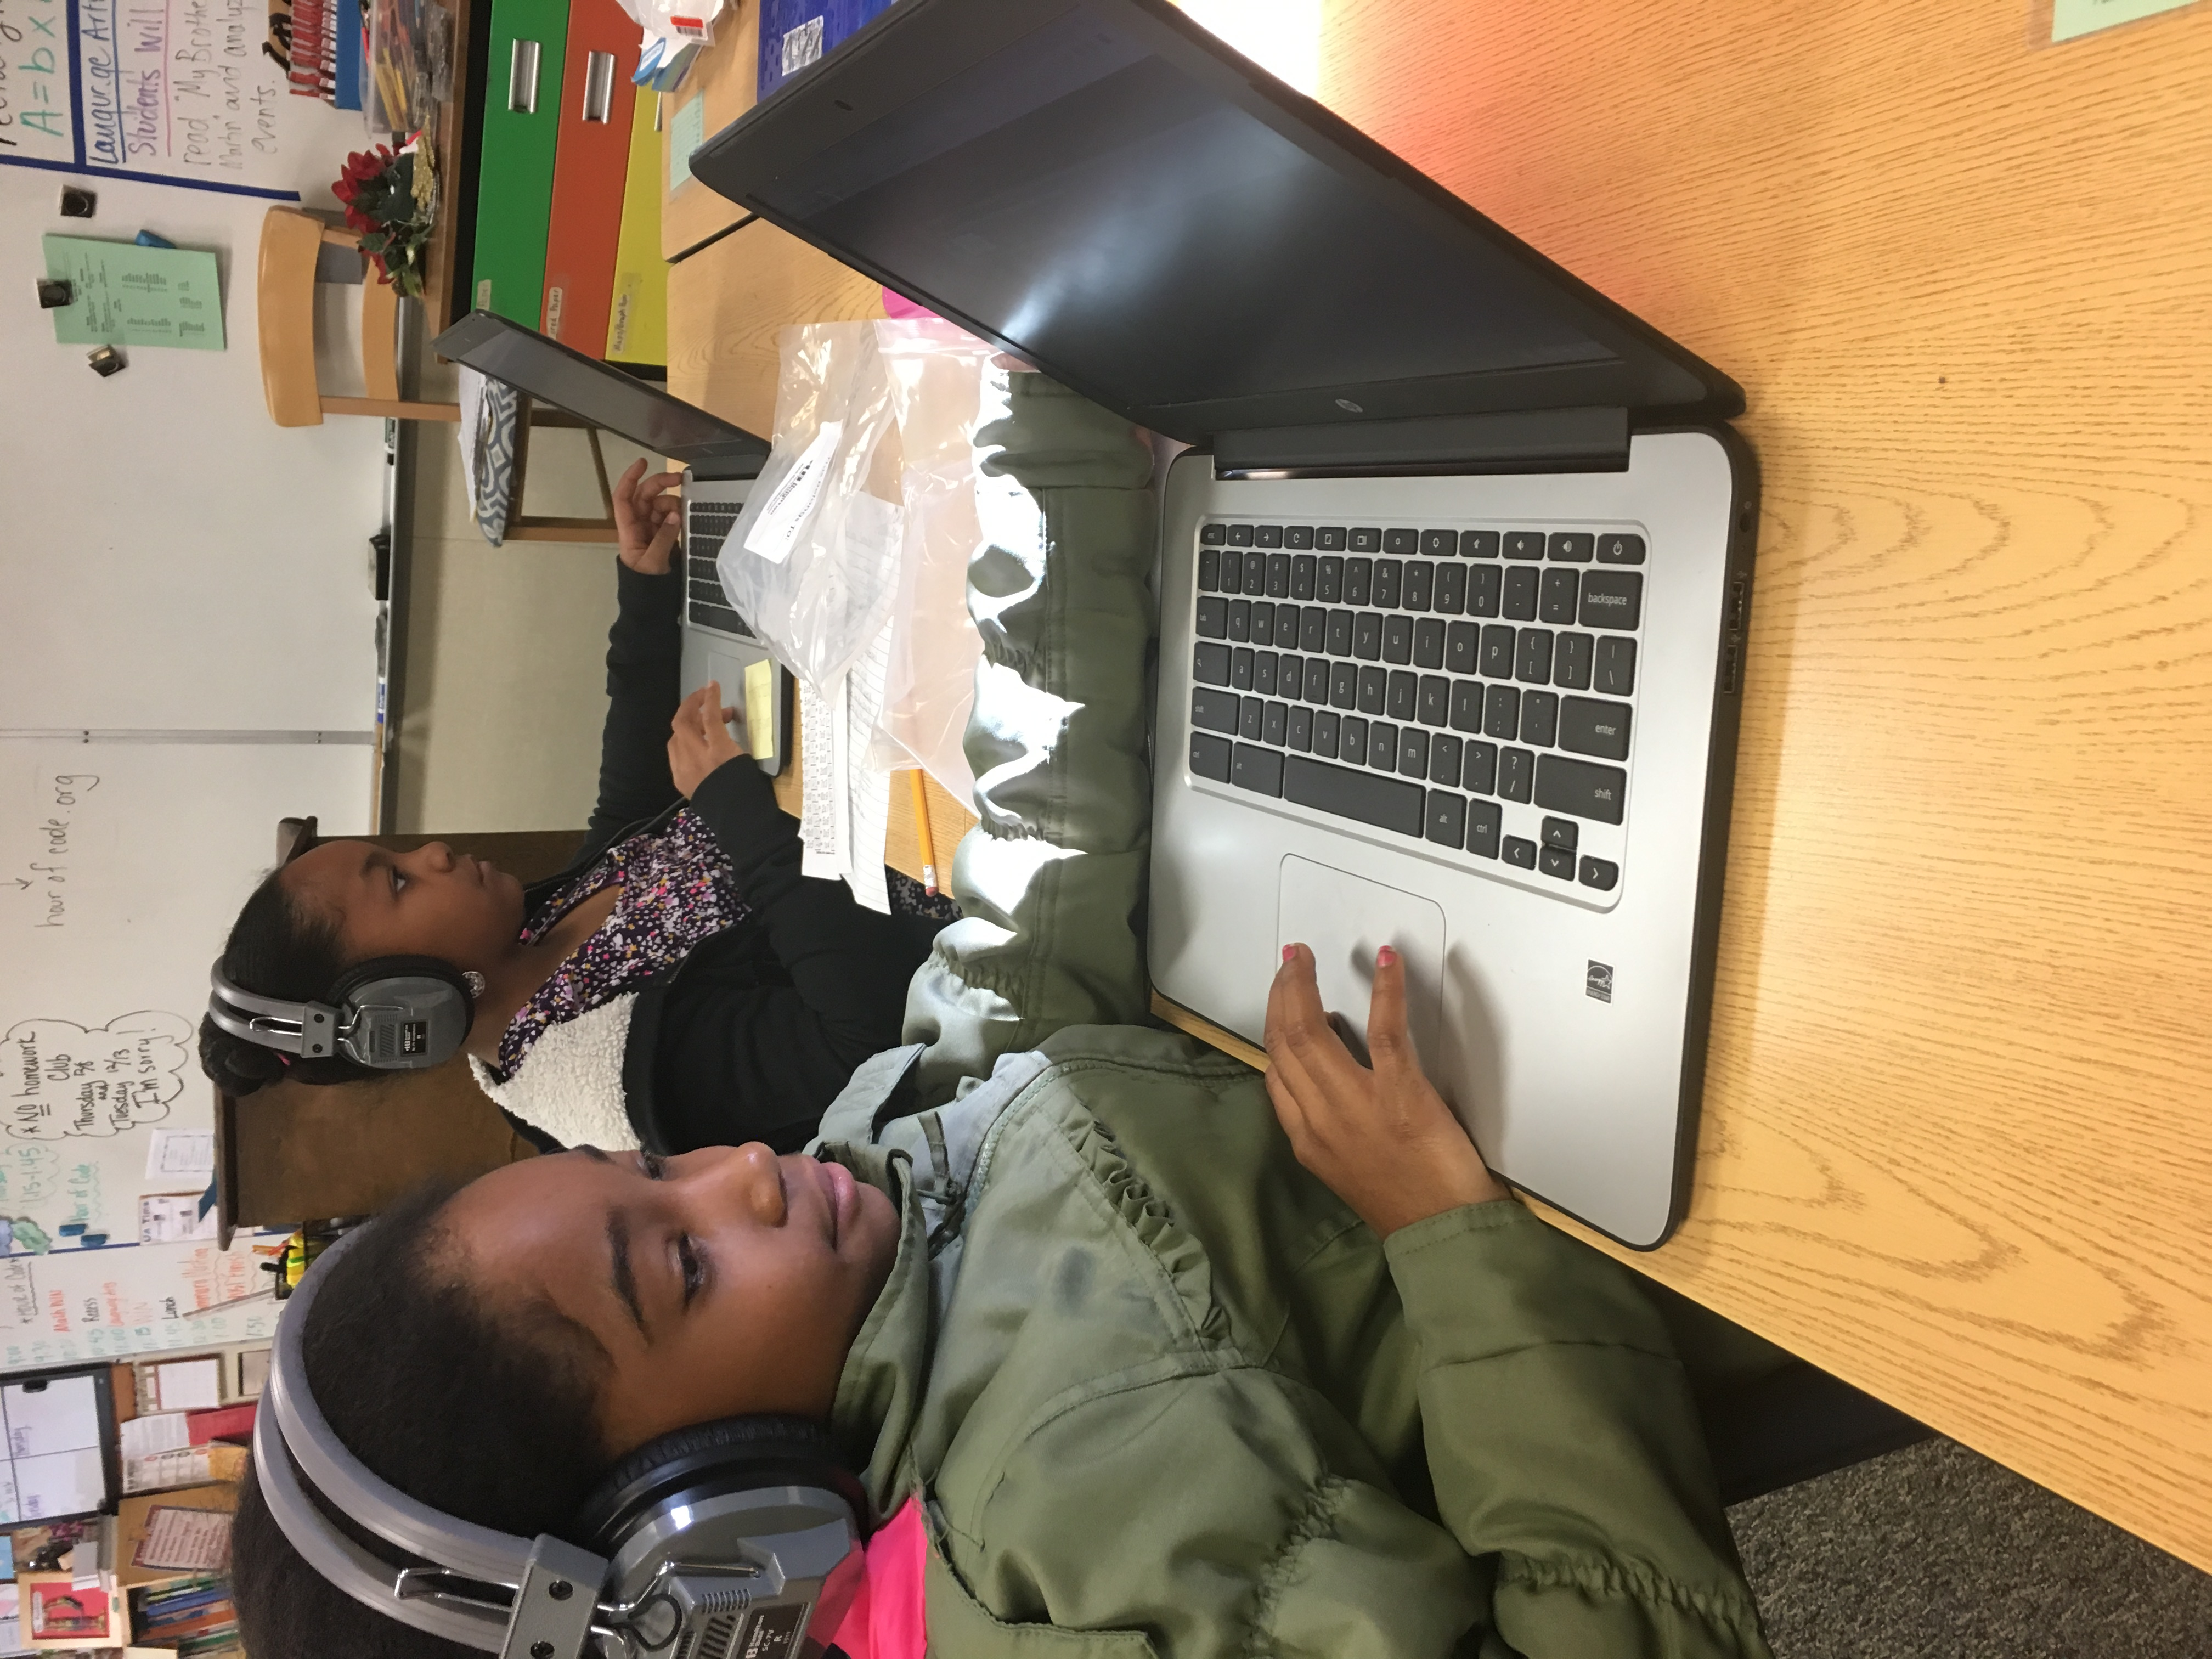 student works on computer with headphones on